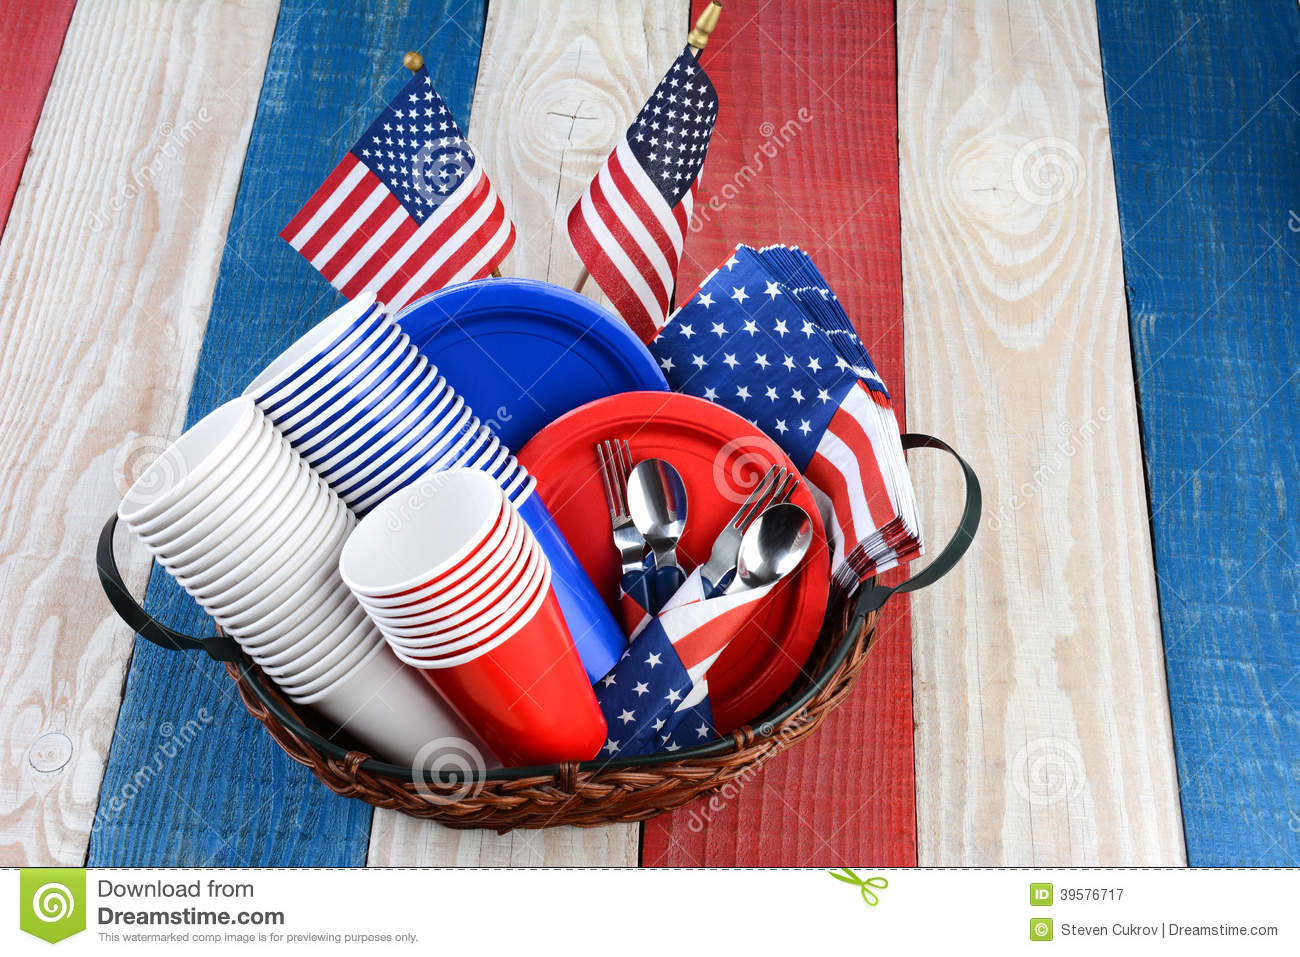 picnic table ready for fourth of july party stock photo happy fourth of july fireworks clipart fourth of july fireworks clipart